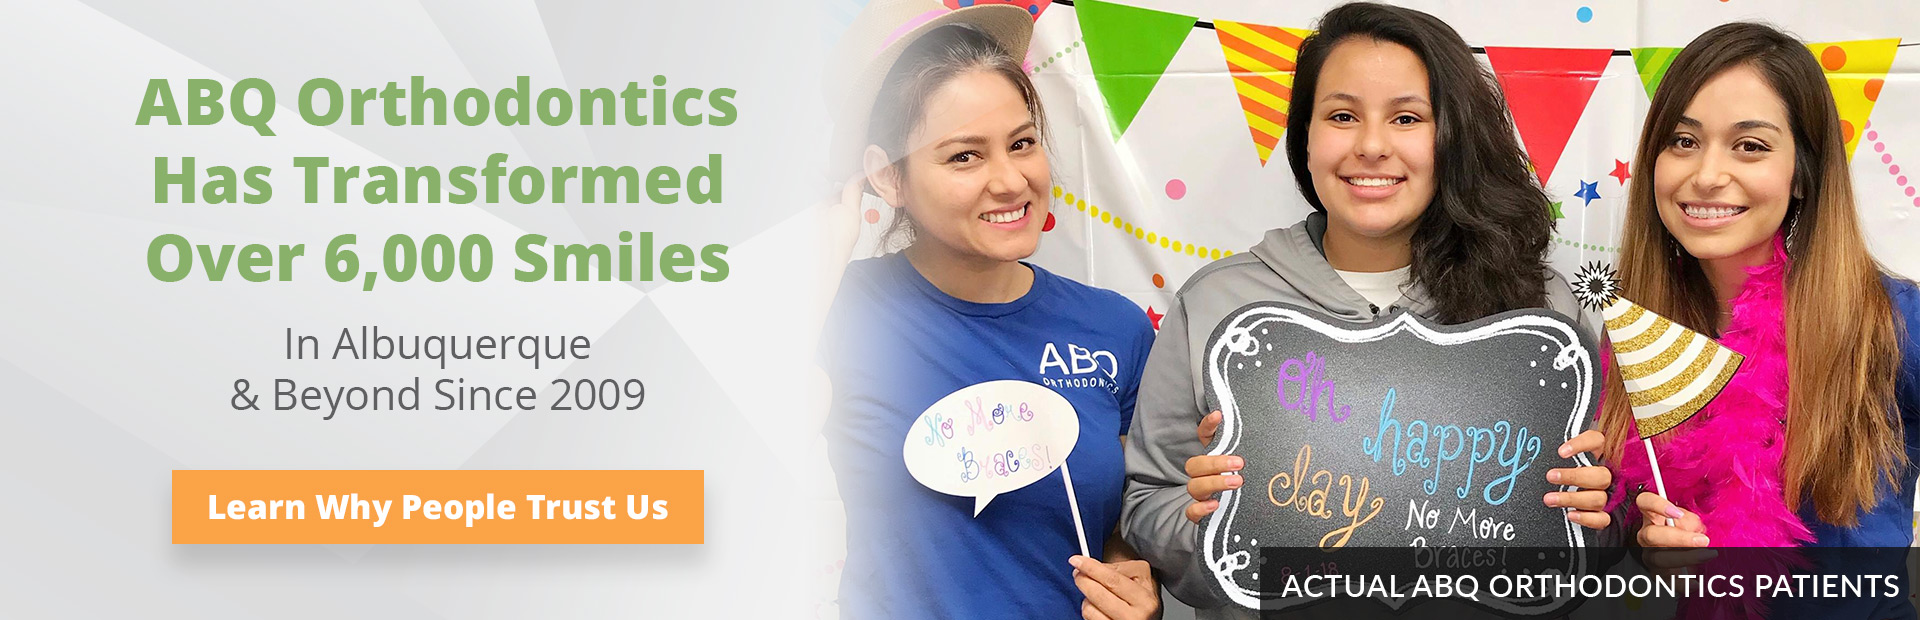 learn more abq orthodontics